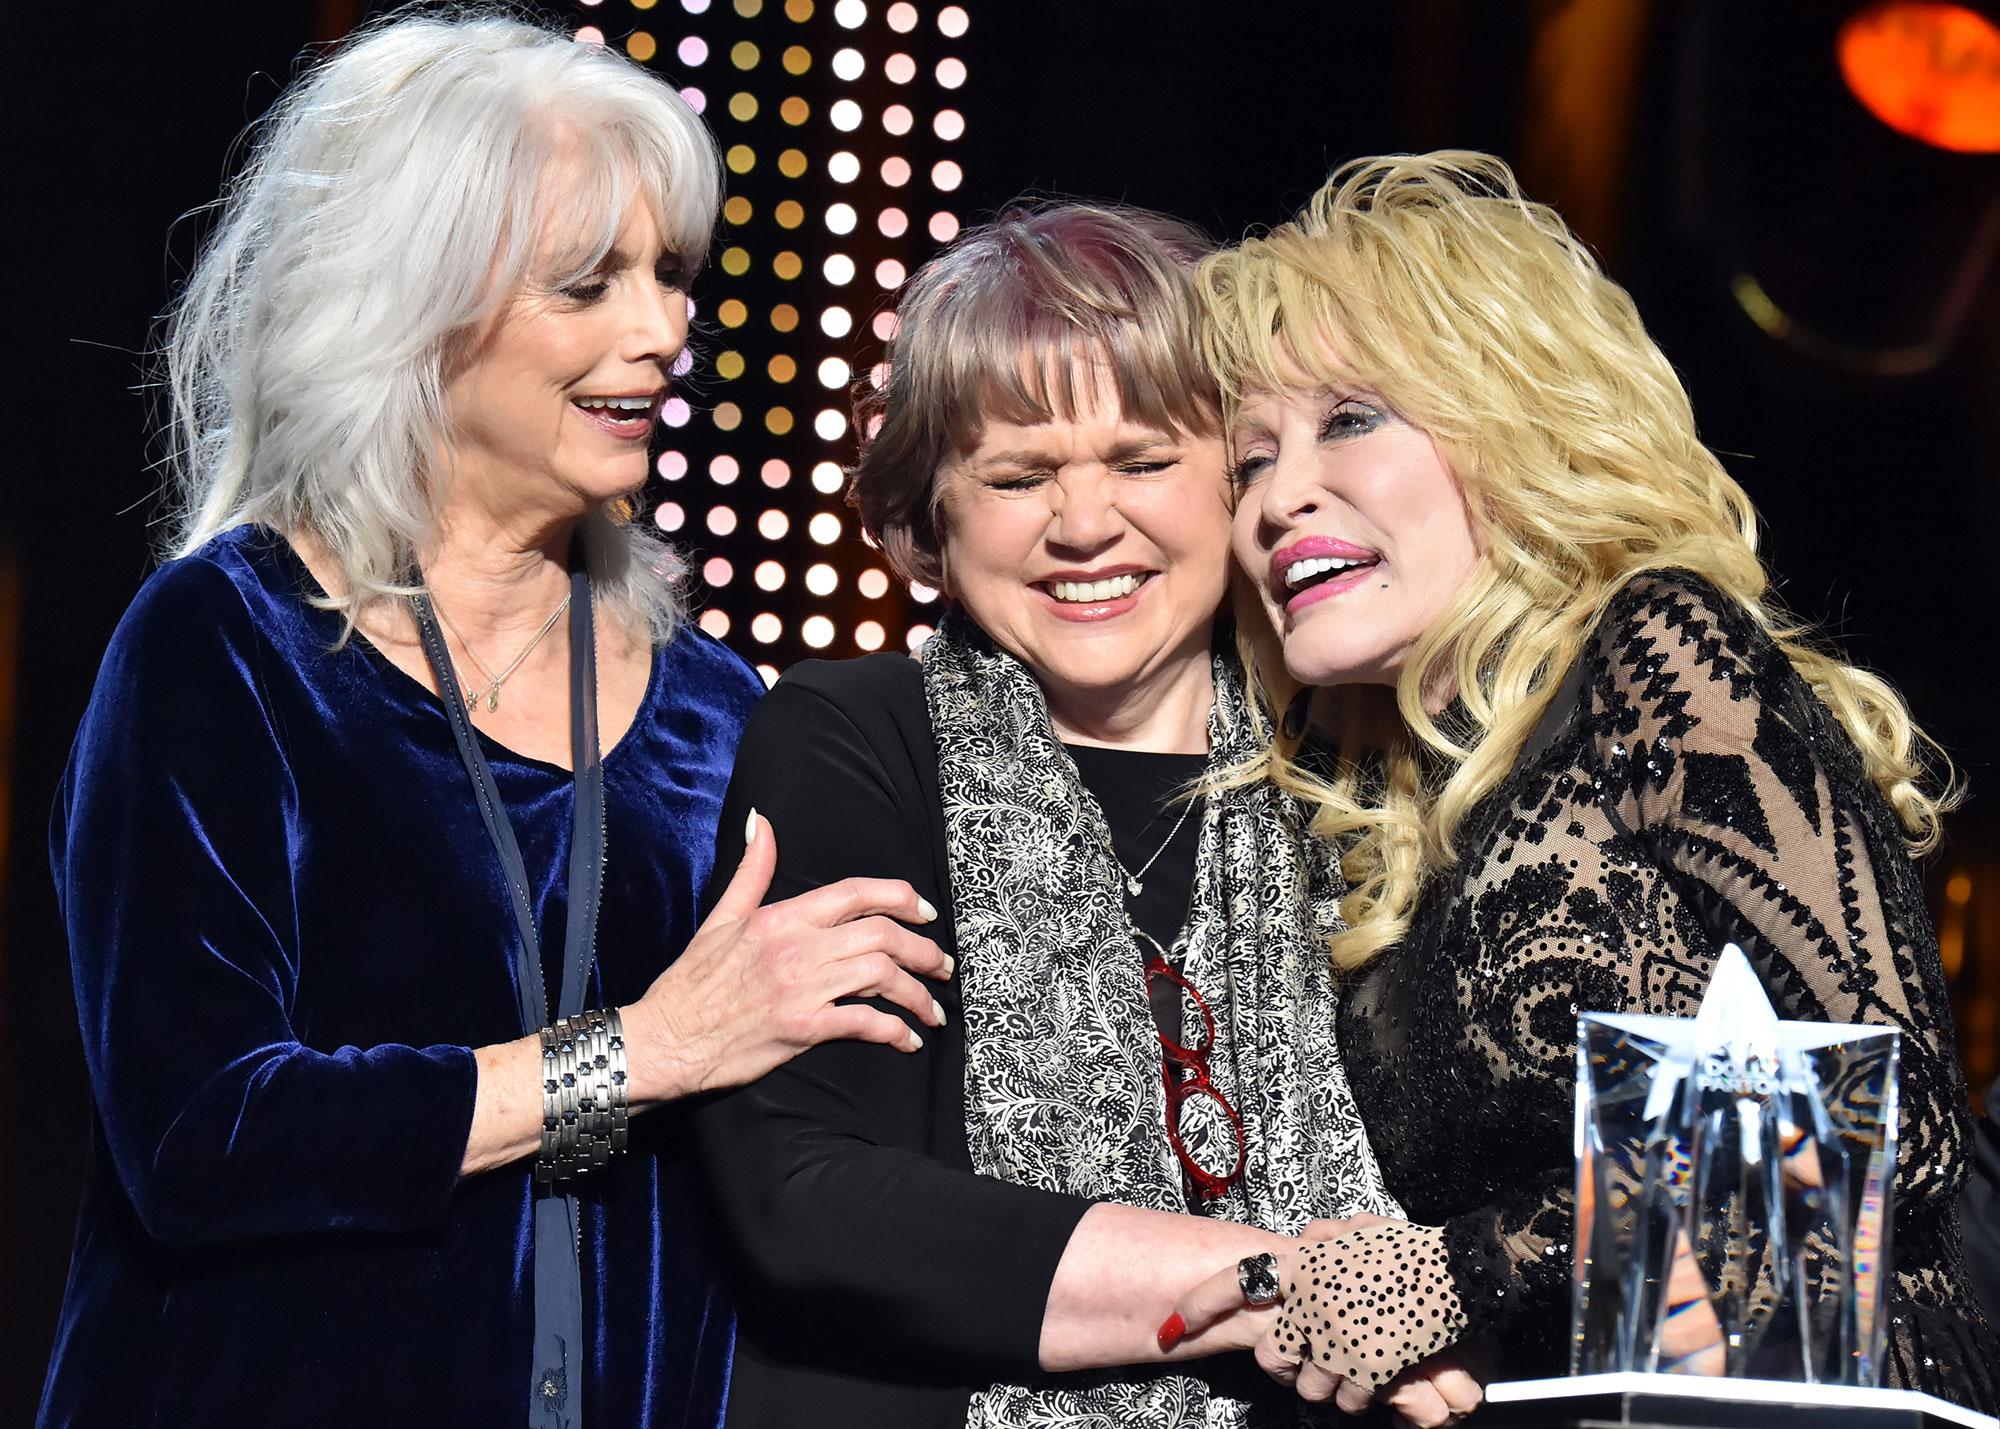 Katy Perry, Miley Cyrus, Garth Brooks, Willie Nelson and more pay tribute to Dolly Parton at MusiCares 2019 Person of the Year dolly-c